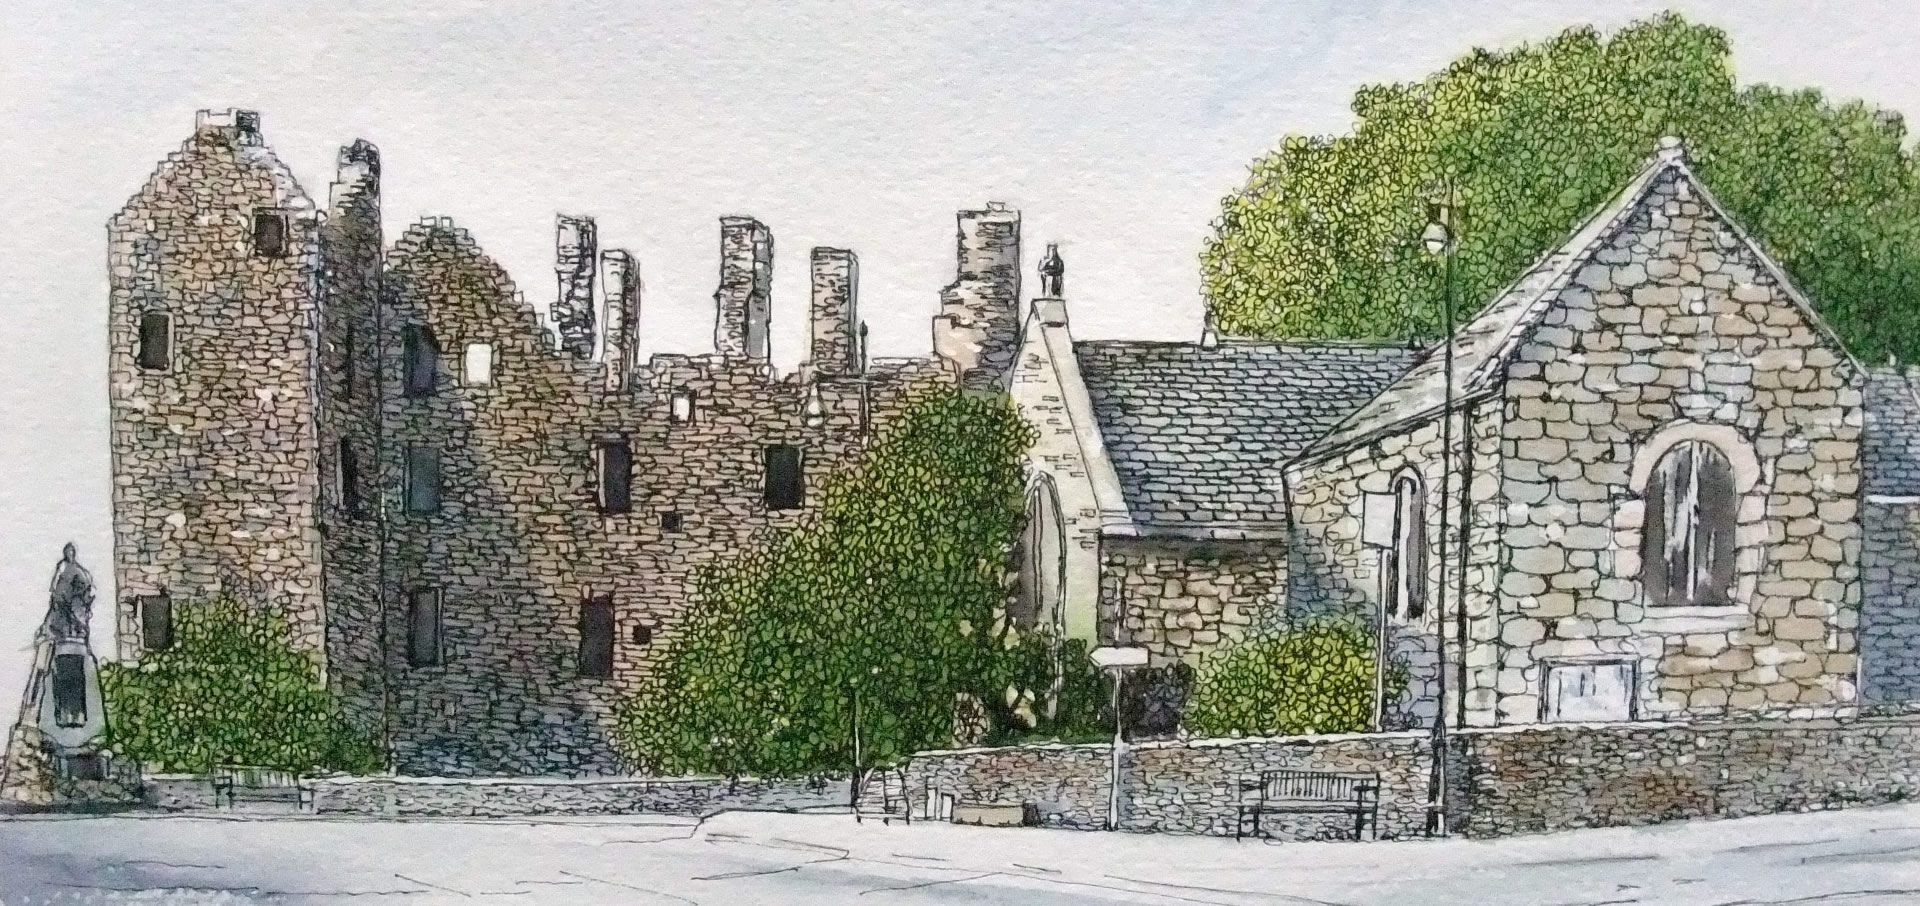 M'Cllelan Castle at Kirkcudbright